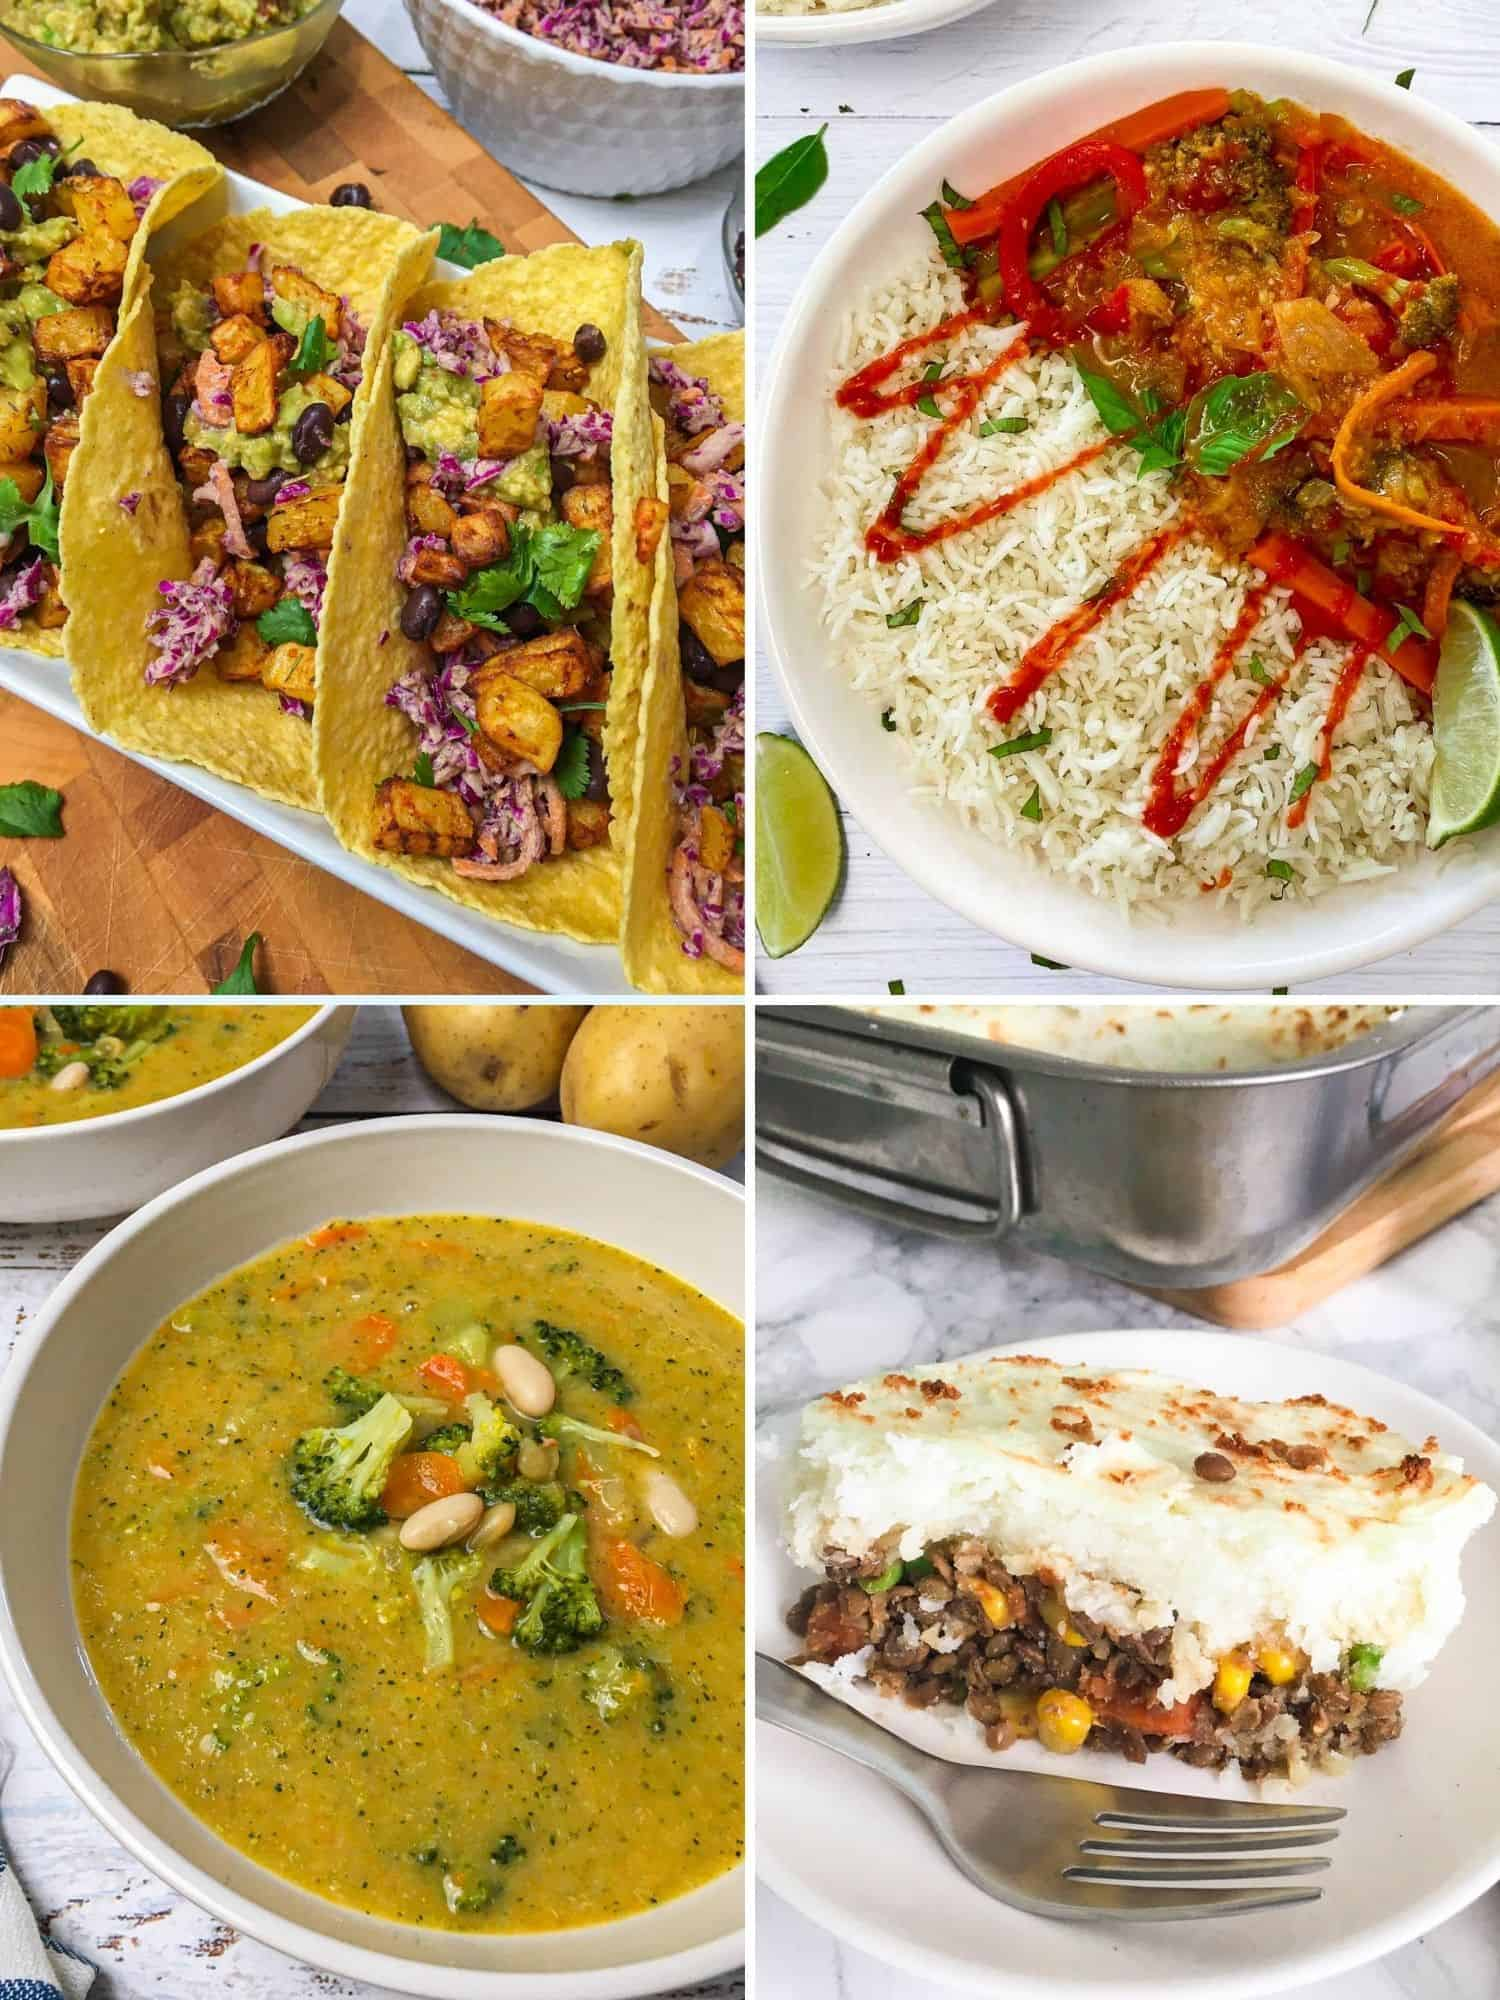 Collage of 4 vegan dinner recipes: tacos, curry, soup, shepherd's pie.